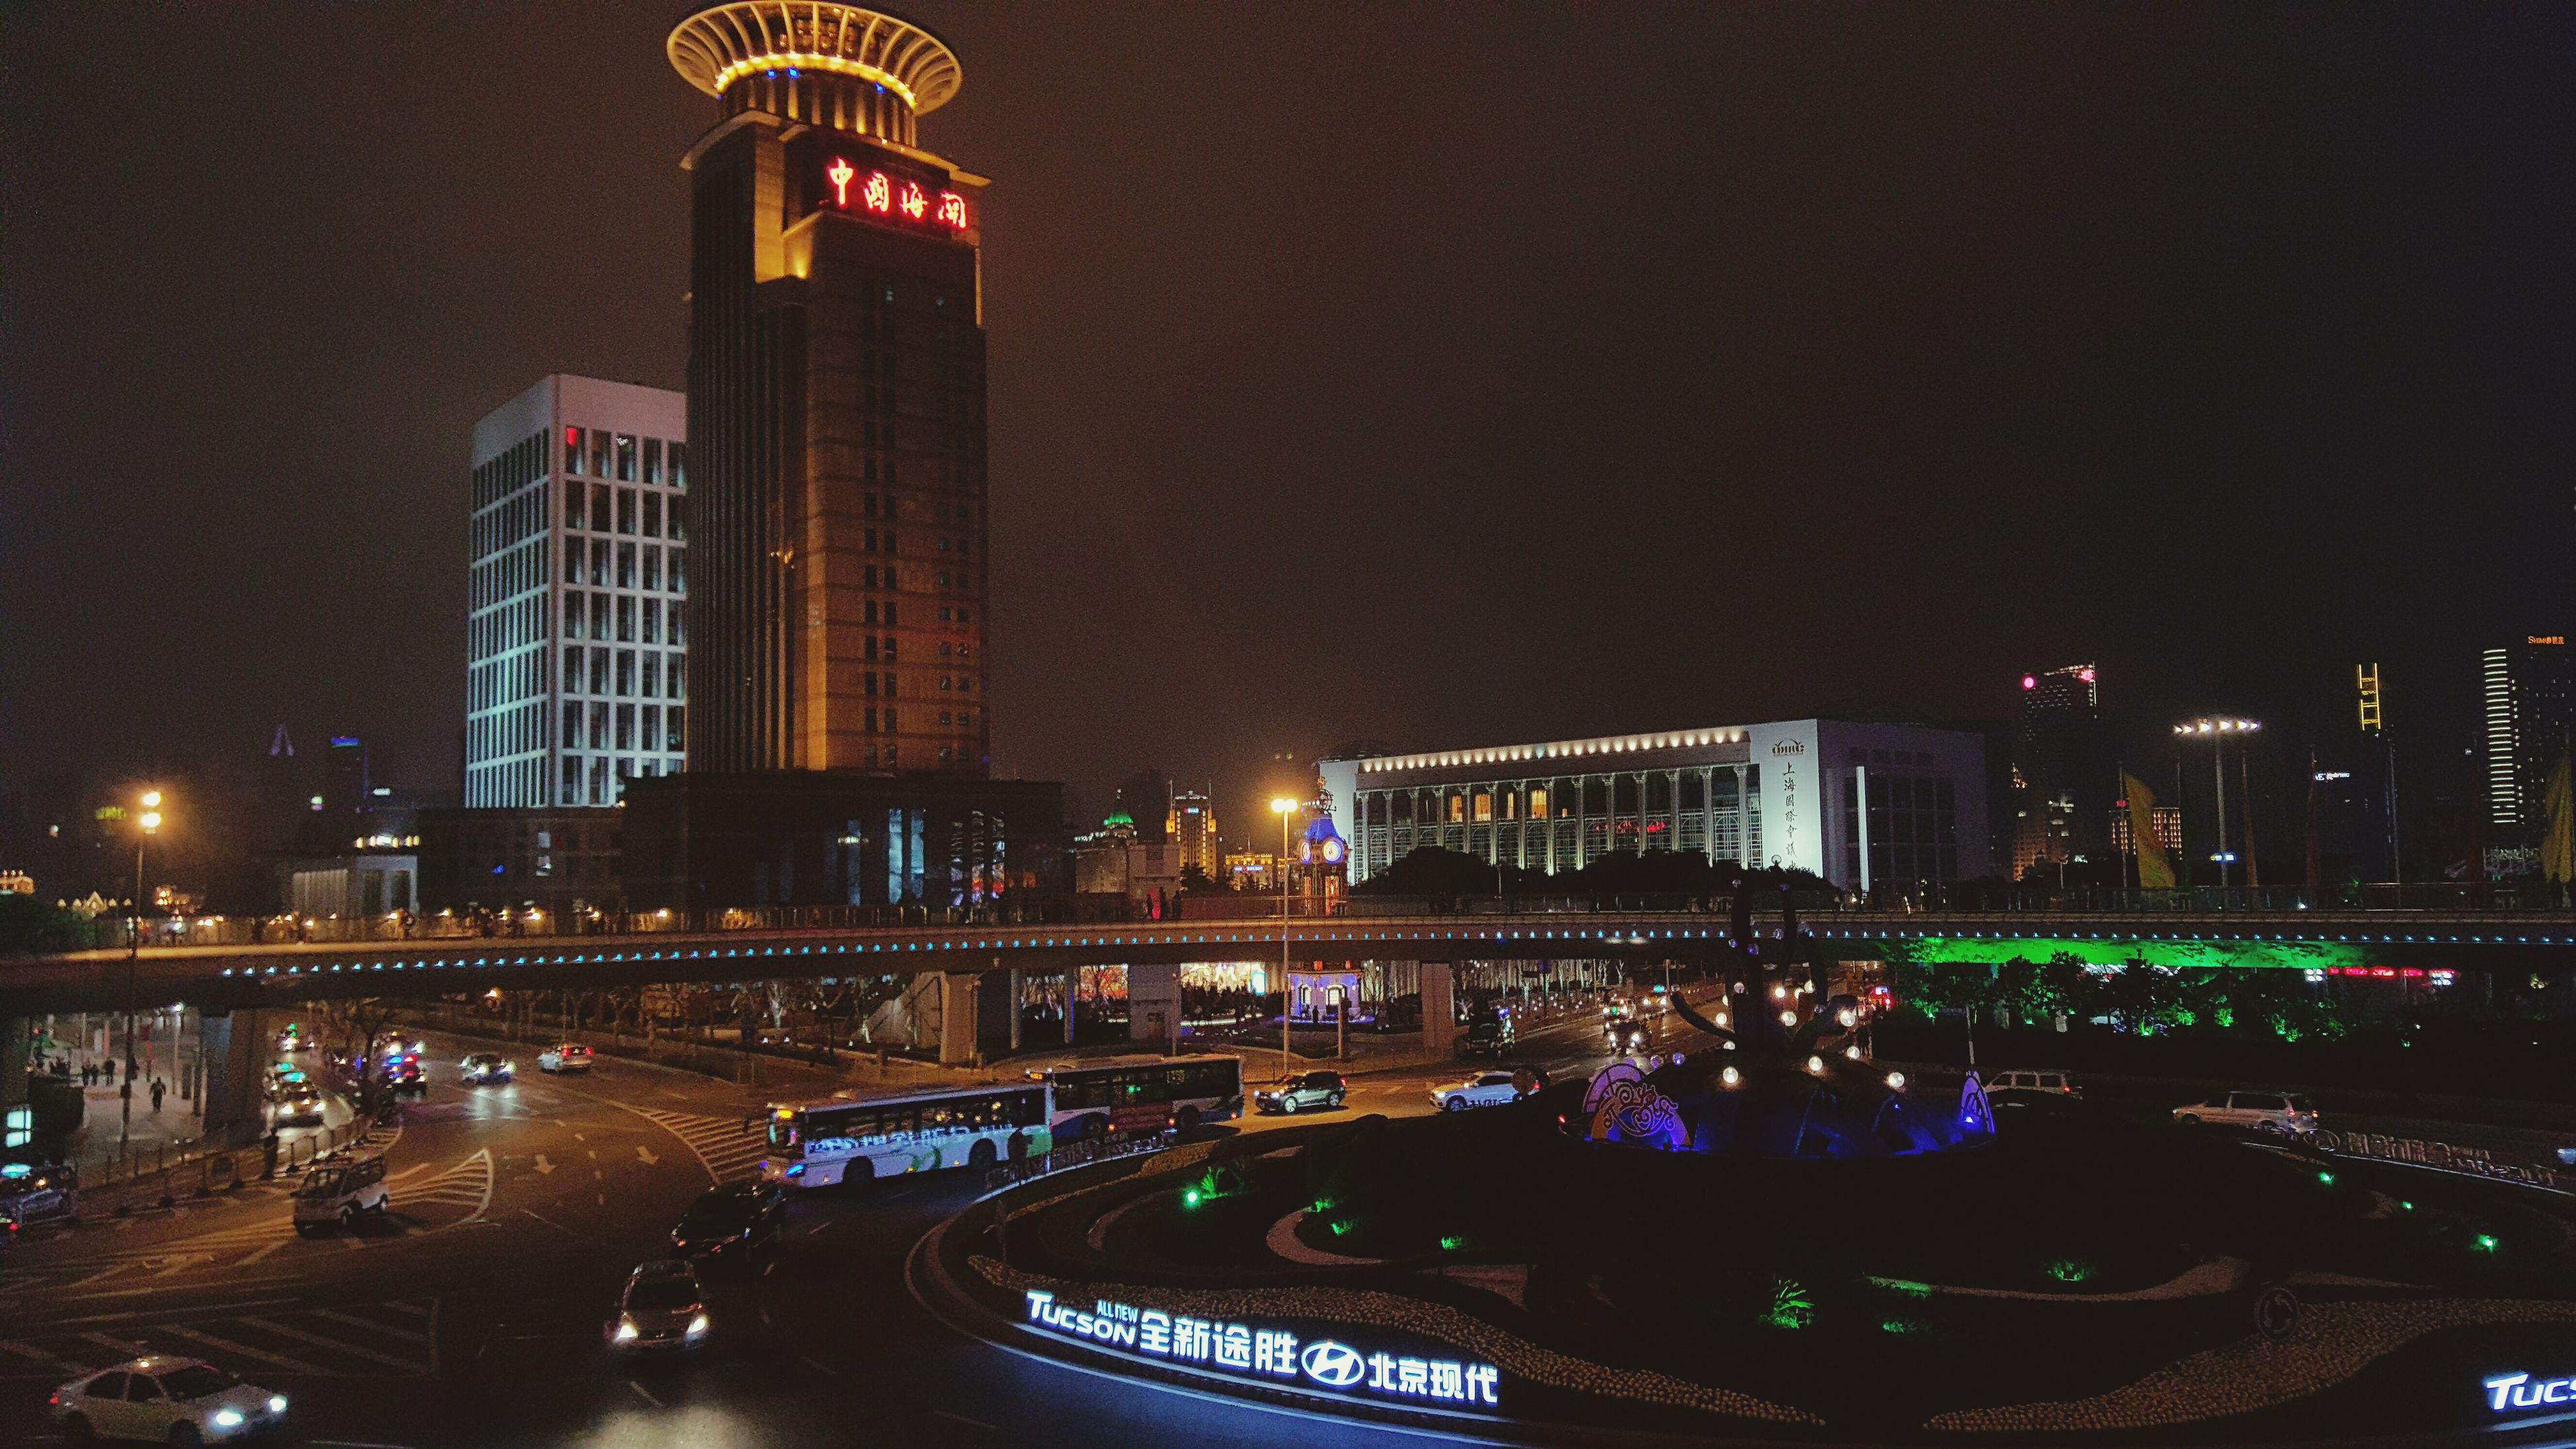 illuminated, architecture, night, built structure, building exterior, city, skyscraper, tall - high, modern, tower, capital cities, cityscape, office building, travel destinations, famous place, city life, clear sky, international landmark, urban skyline, travel